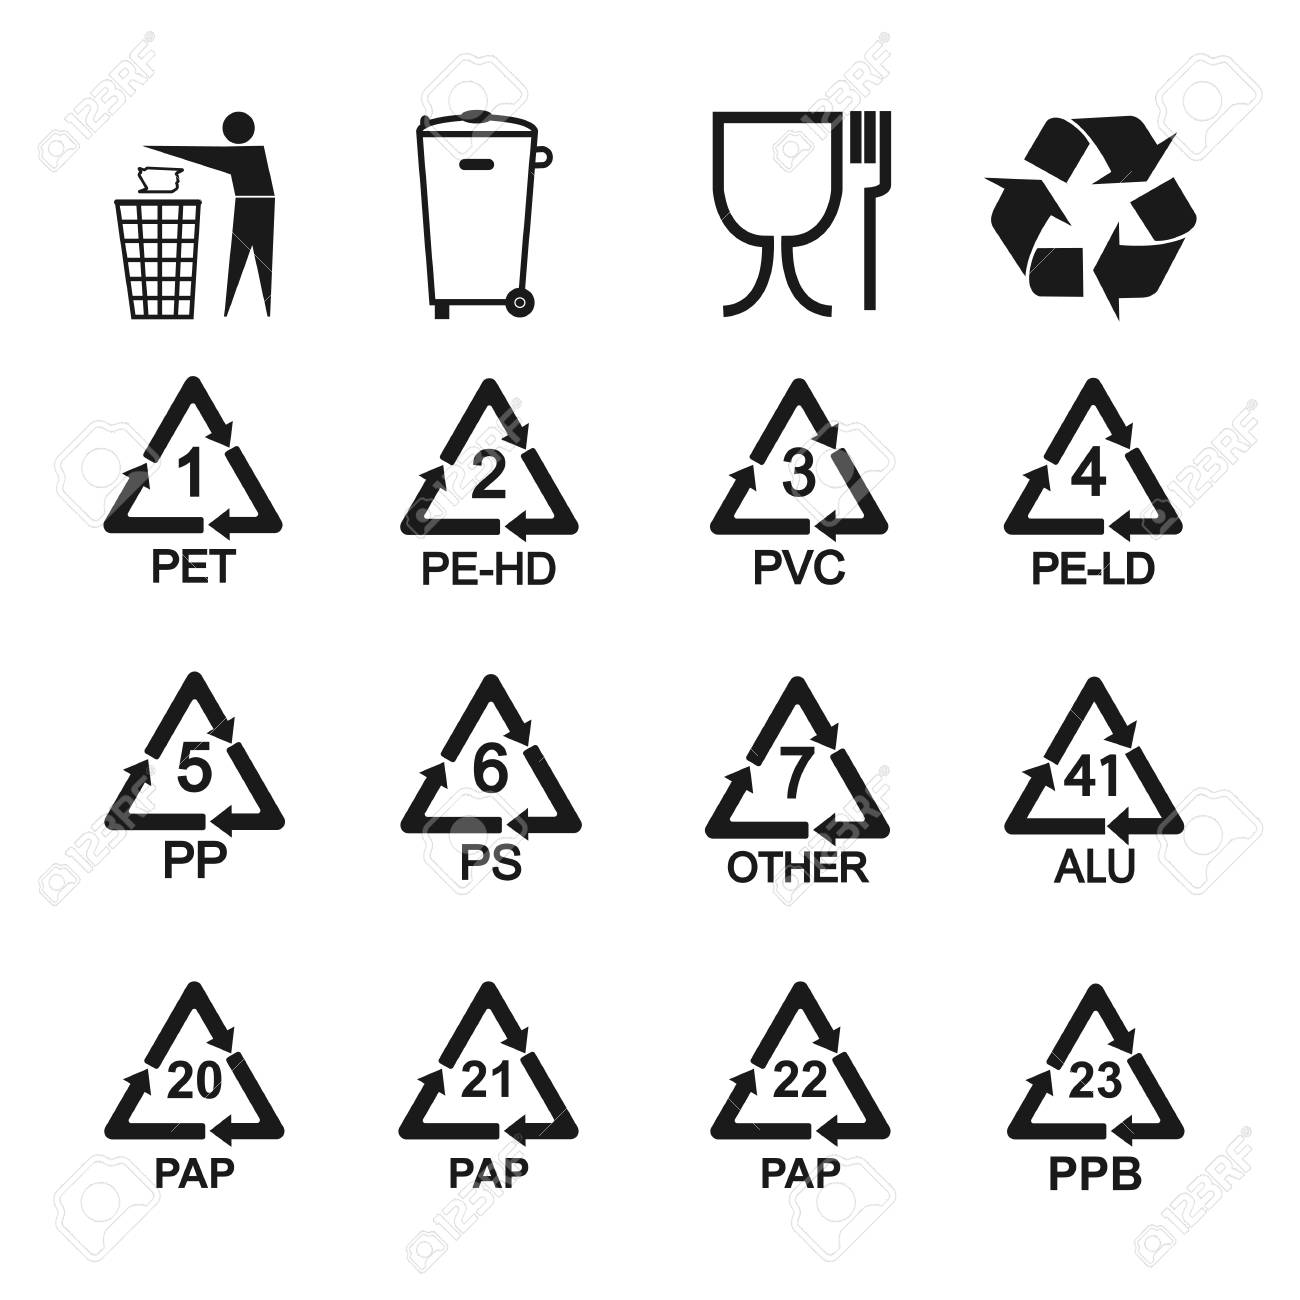 Packaging recycling icons set. Vector illustration, flat design. - 123197635